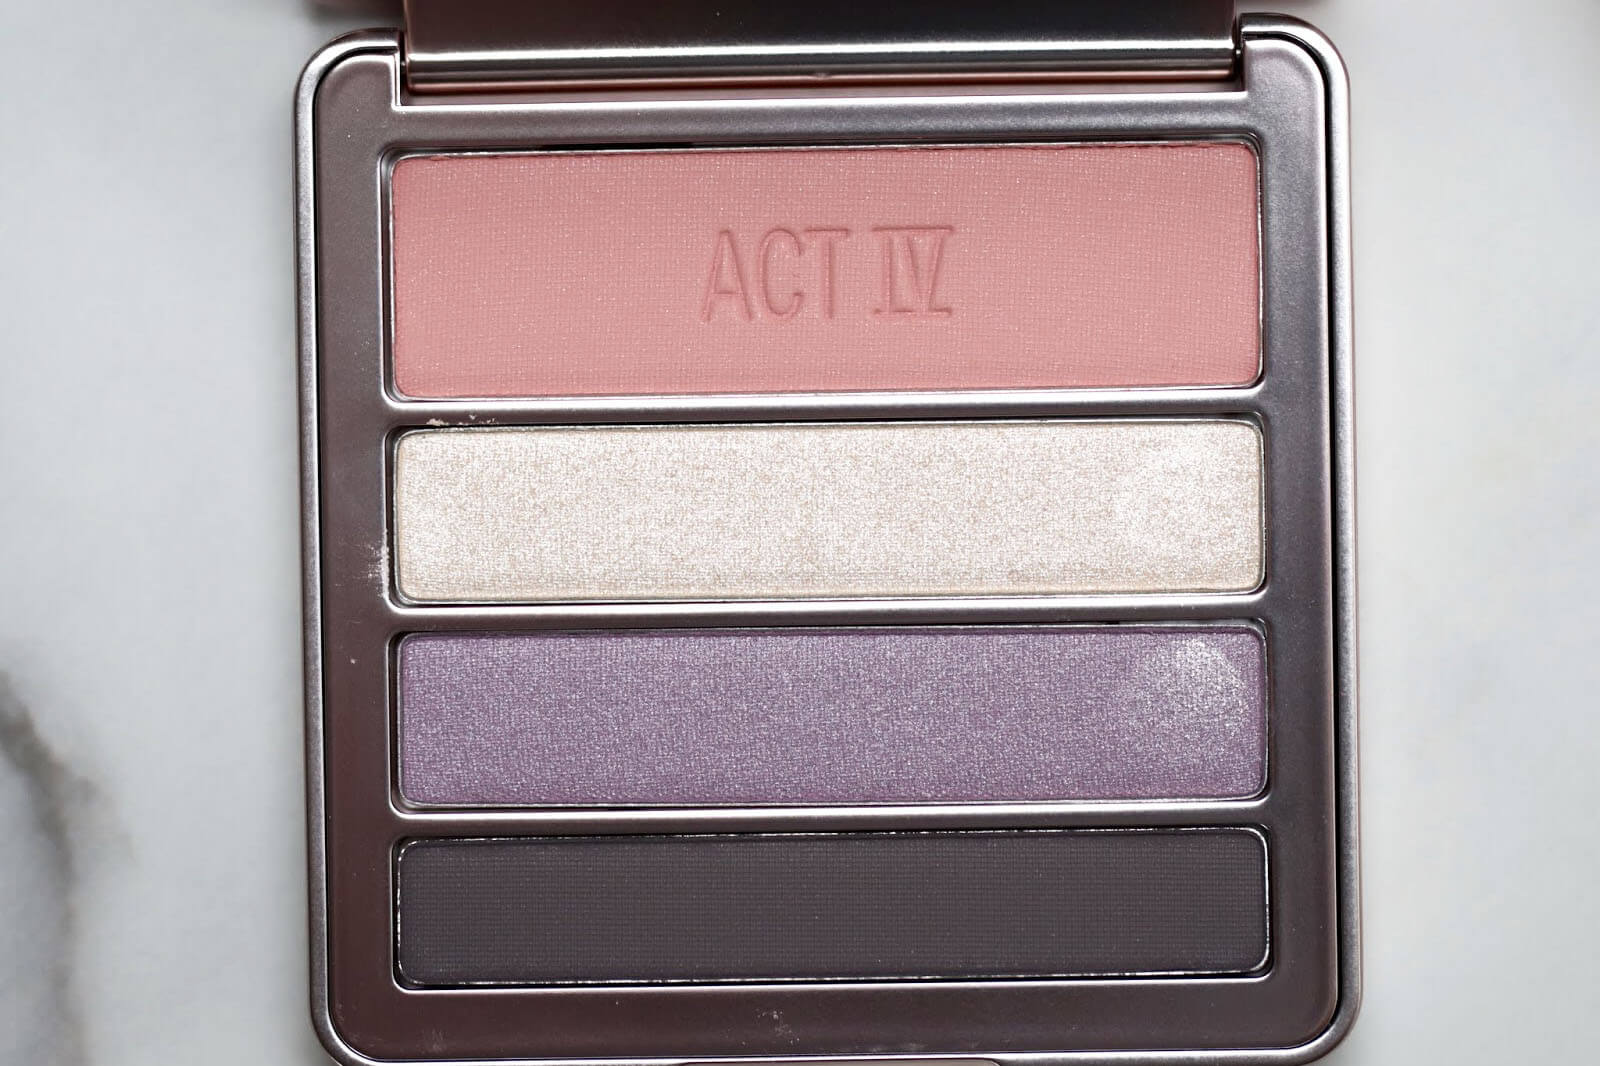 Estee Lauder Act IV Palette Best Pictures swatch